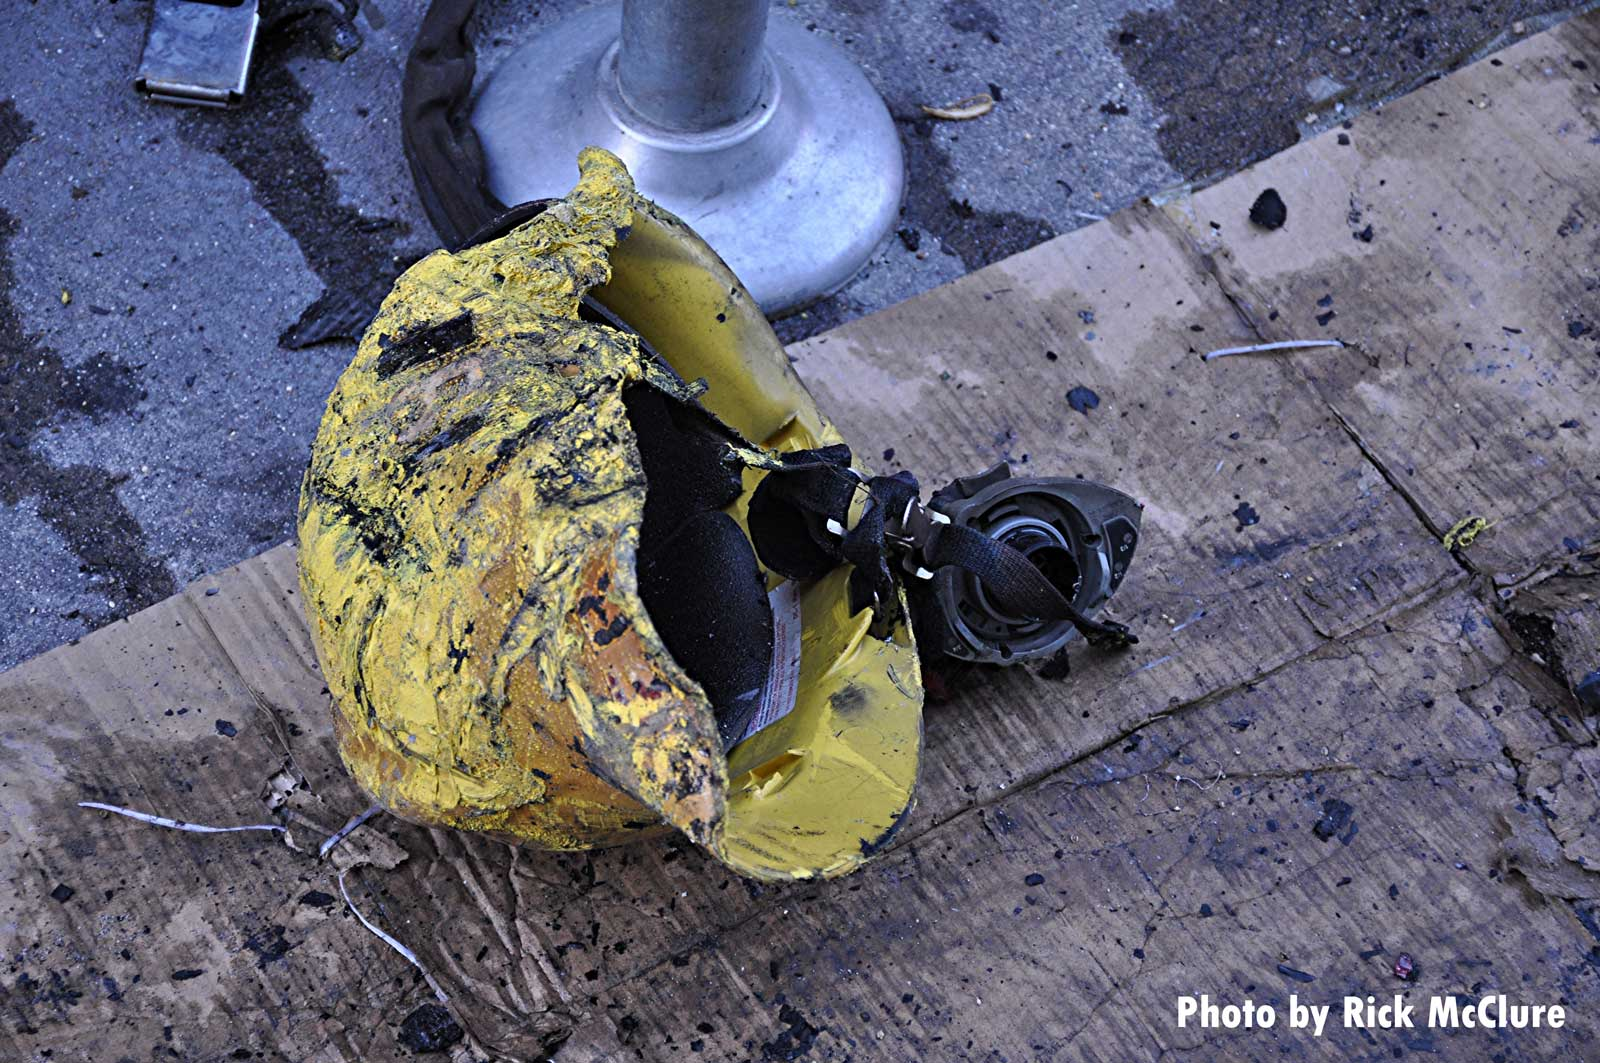 A burned fire helmet after the Los Angeles explosion